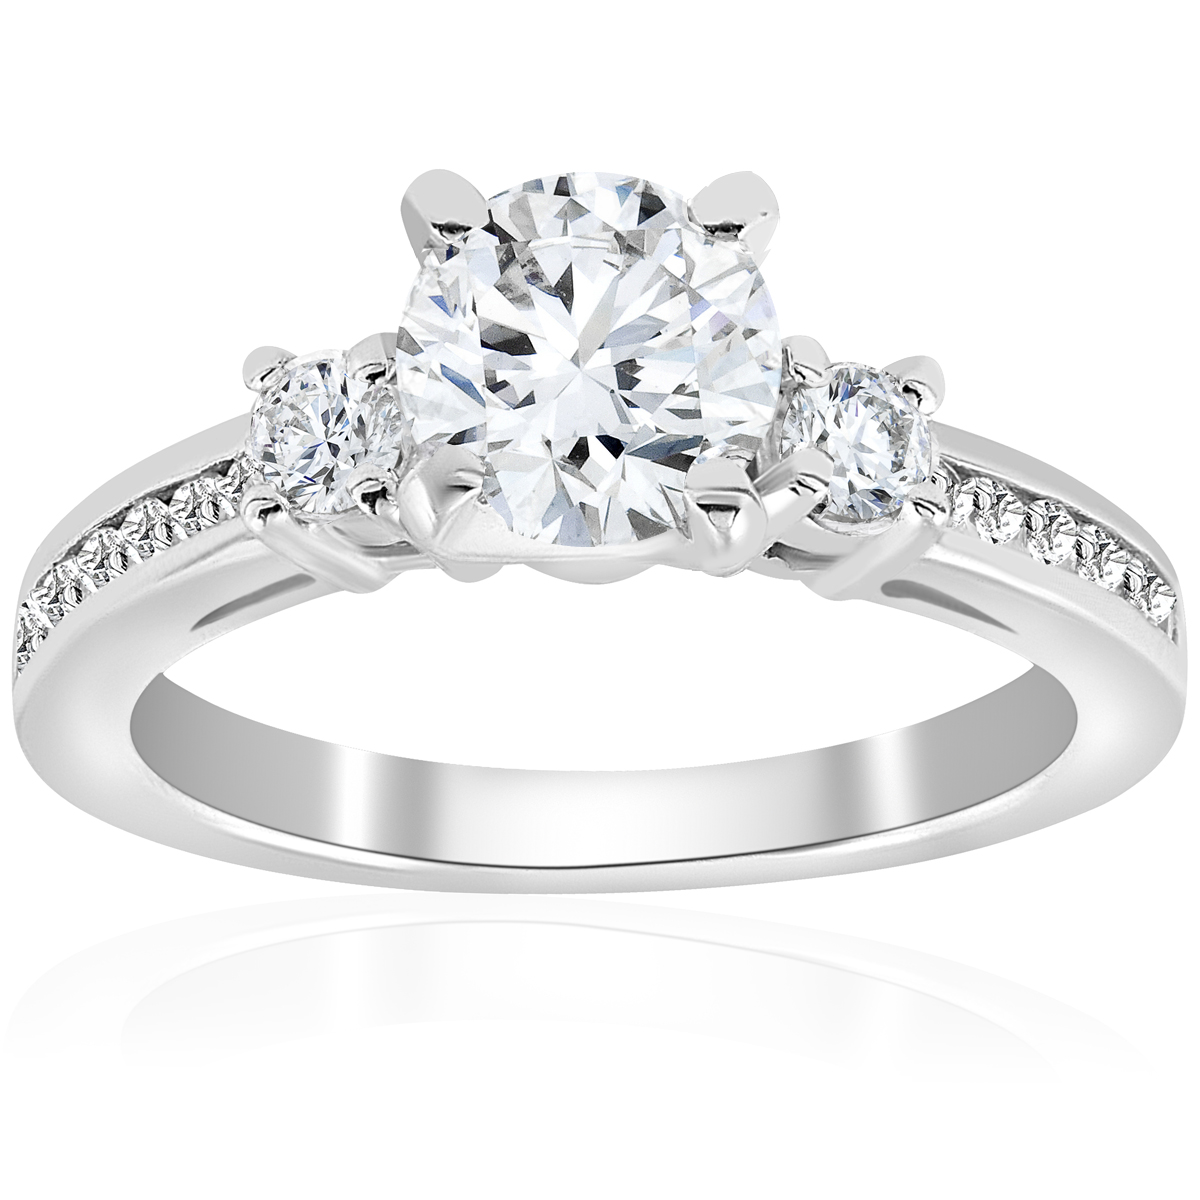 Stone Wedding Rings: 1 Ct Diamond Round Cut Solitaire 3 Stone Engagement Ring